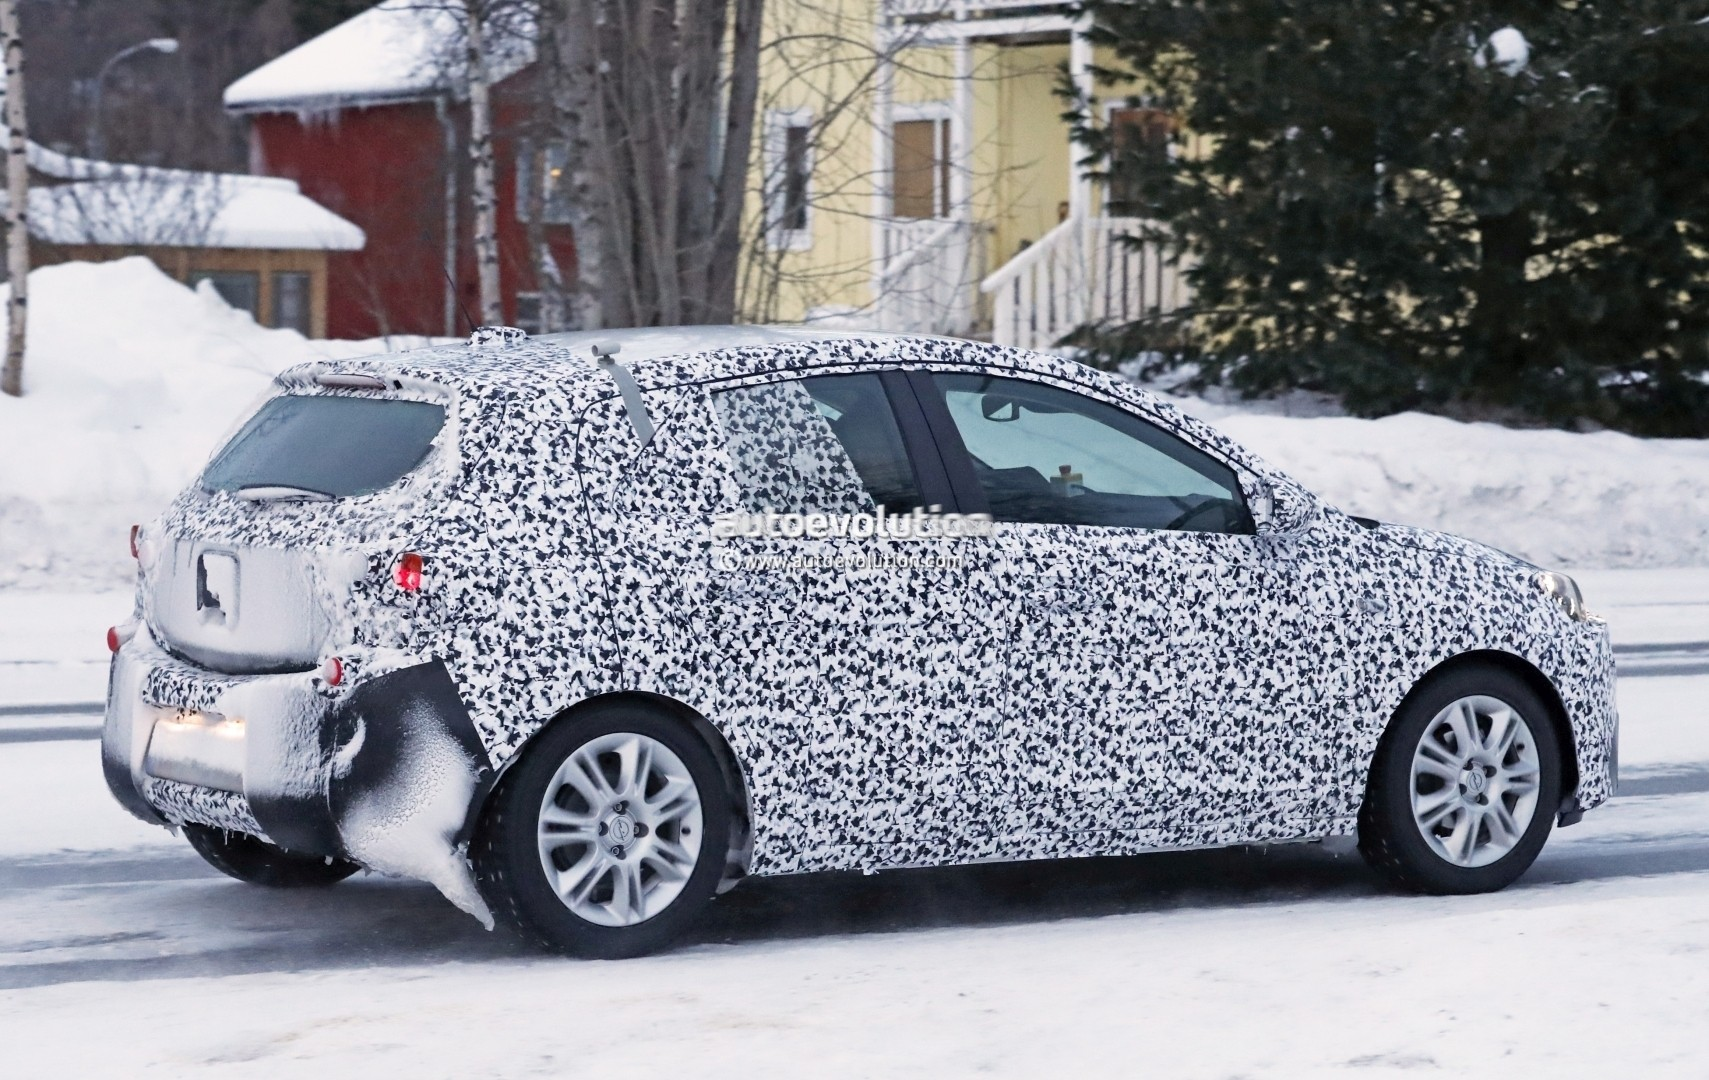 New 2019 Opel Corsa Shows Production Headlights In Latest